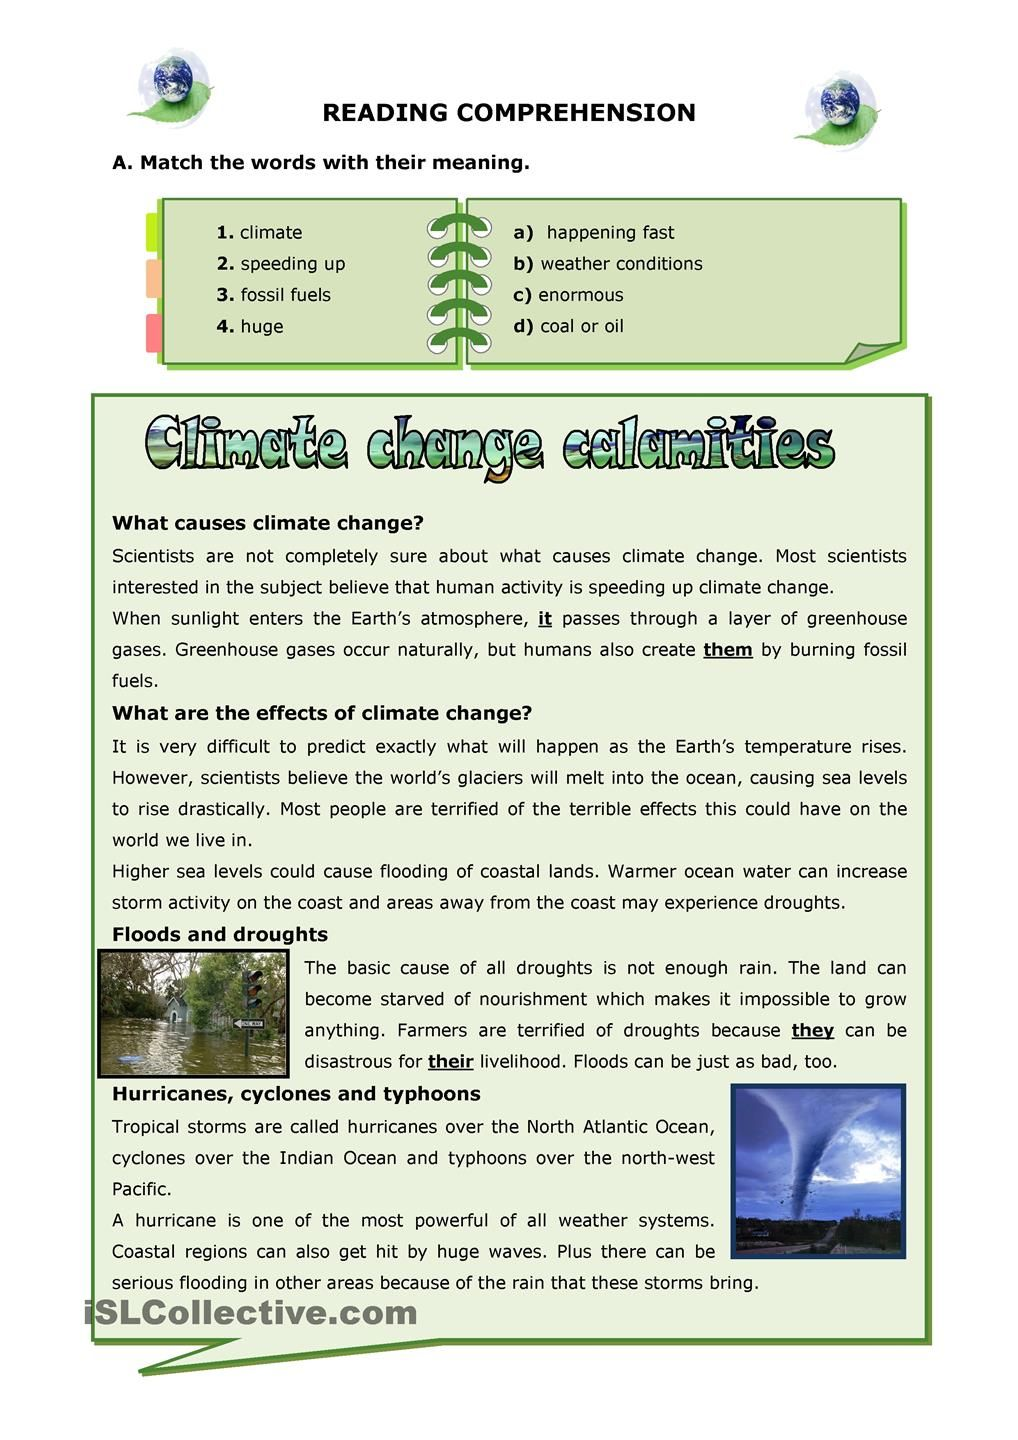 Worksheets Climate Worksheet climate change calamities reading pinterest calamities